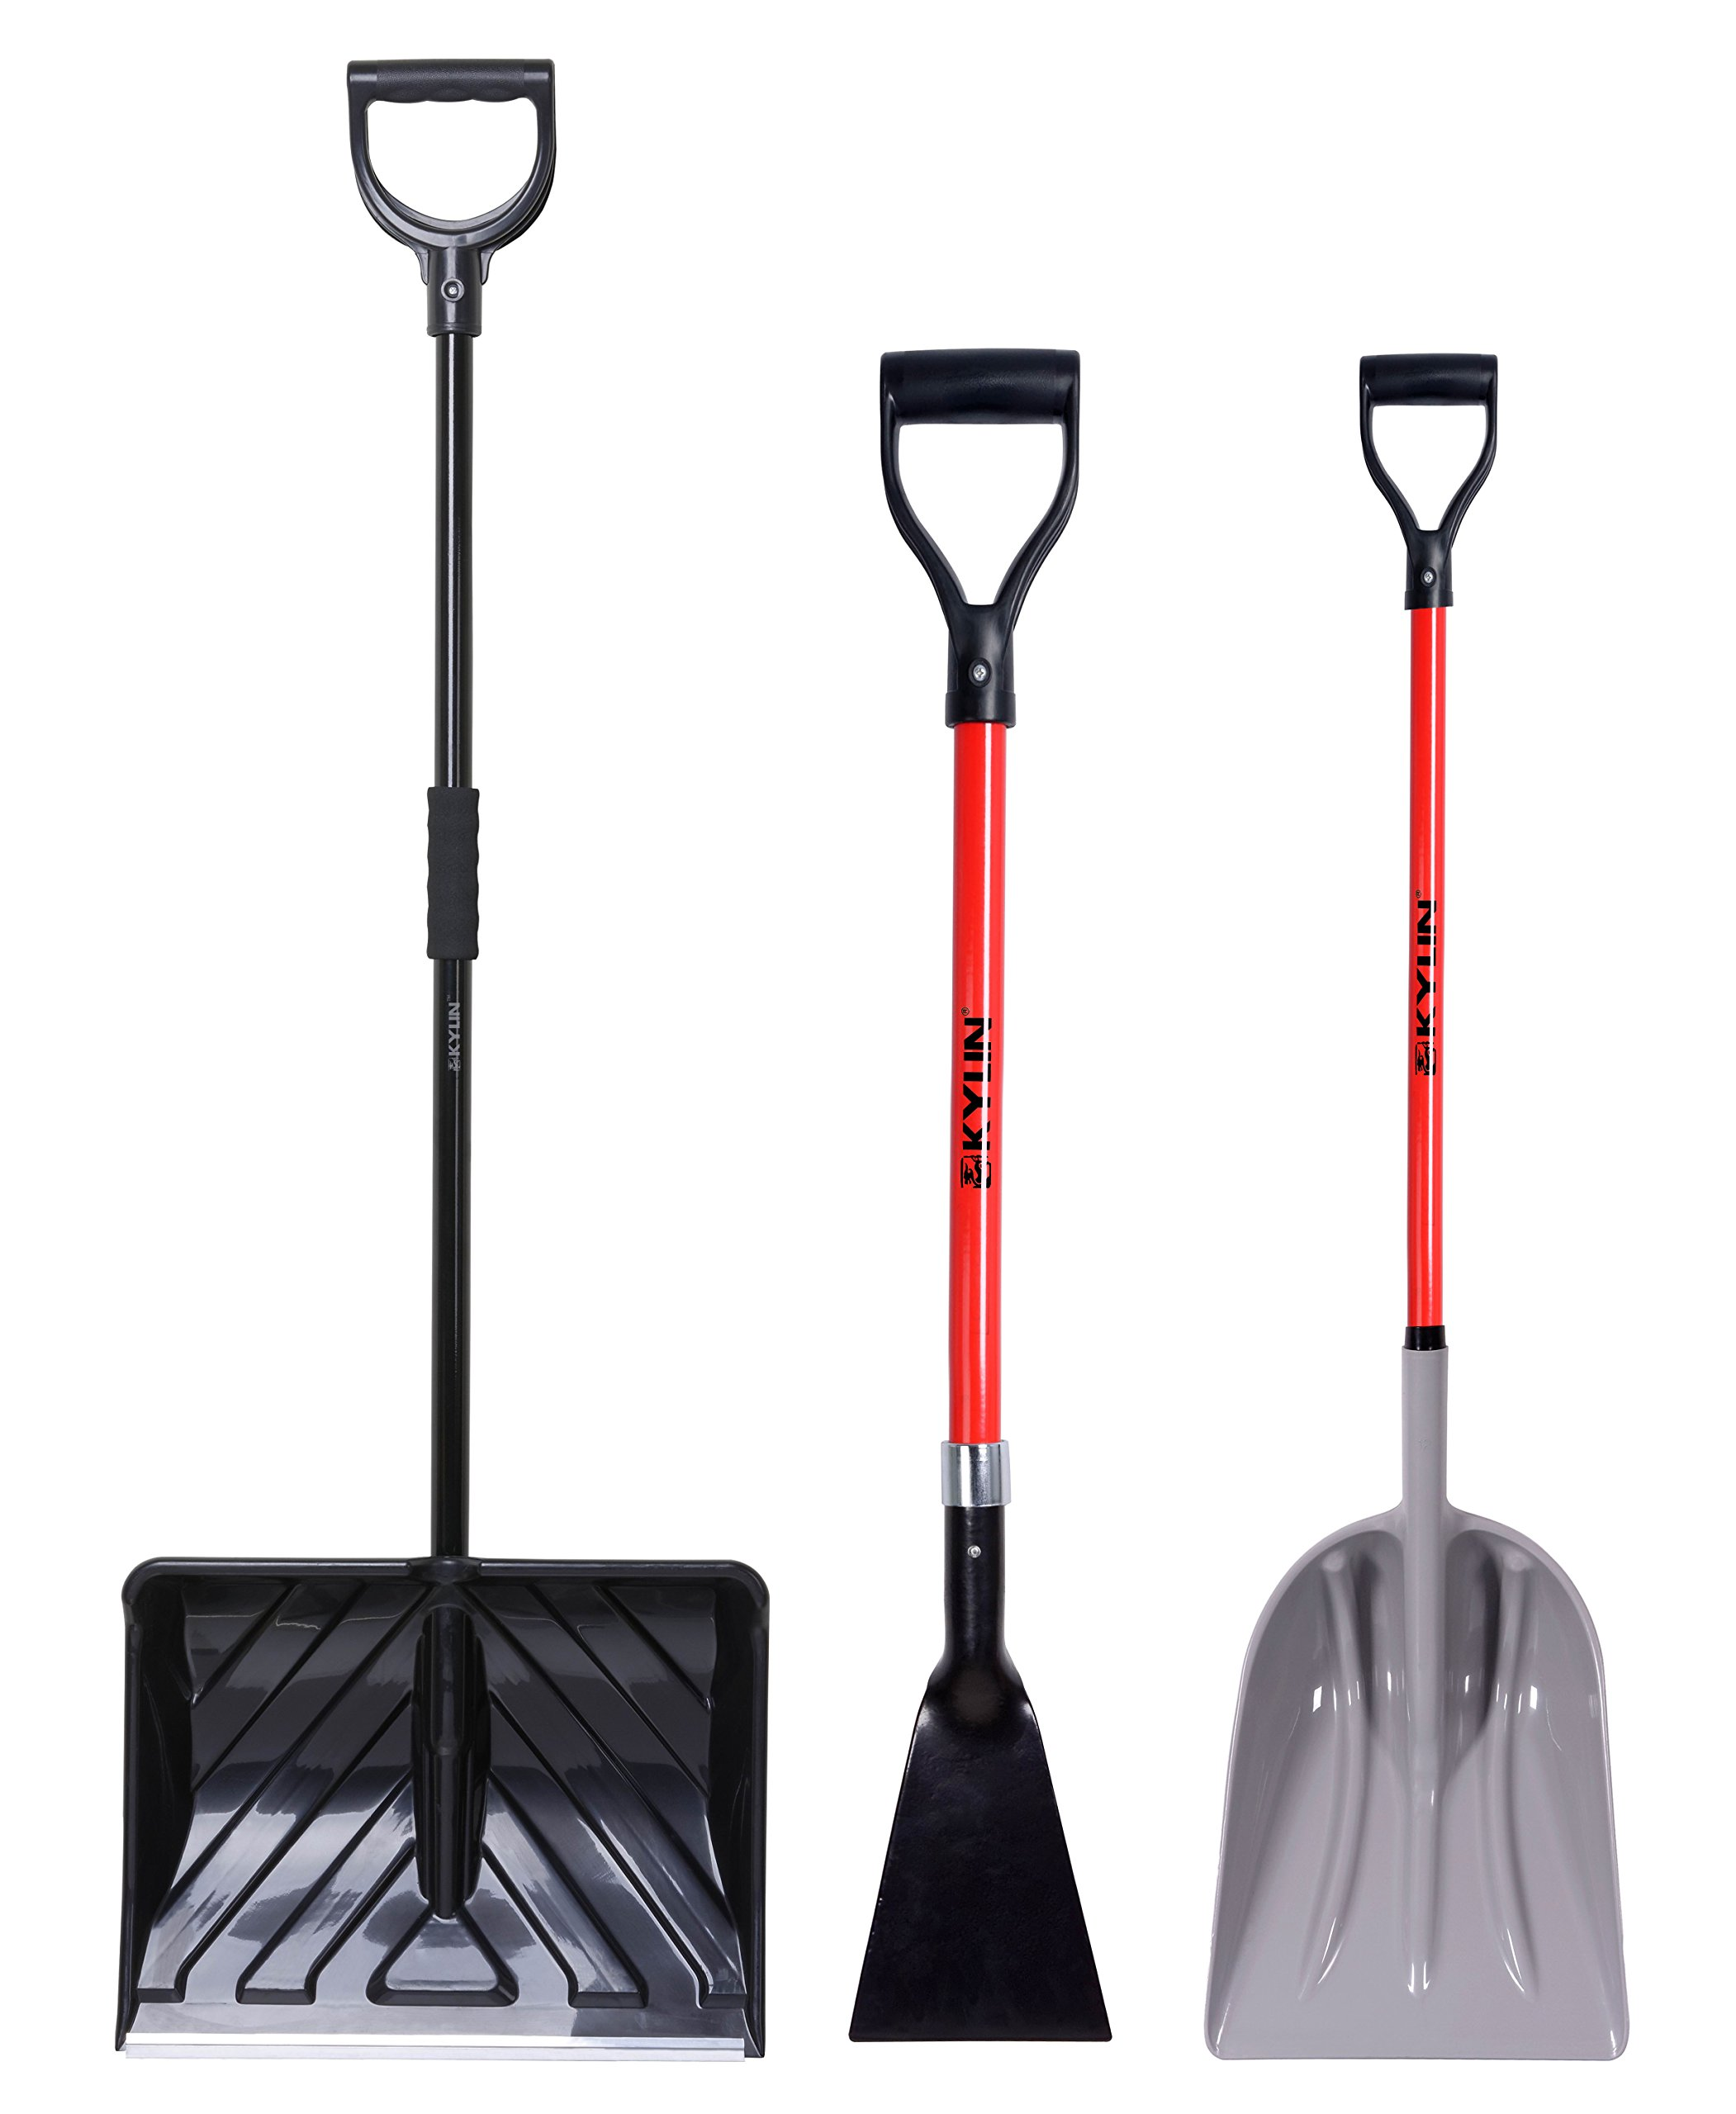 KYLIN Multifunctional Garden Tools Set- Include 18'' PP Grain/Leaves Pusher, 7'' Forged Sidewalk and Ice Scraper, 12 Snow/Garden Utility Shovel,All with D-Grip Handle